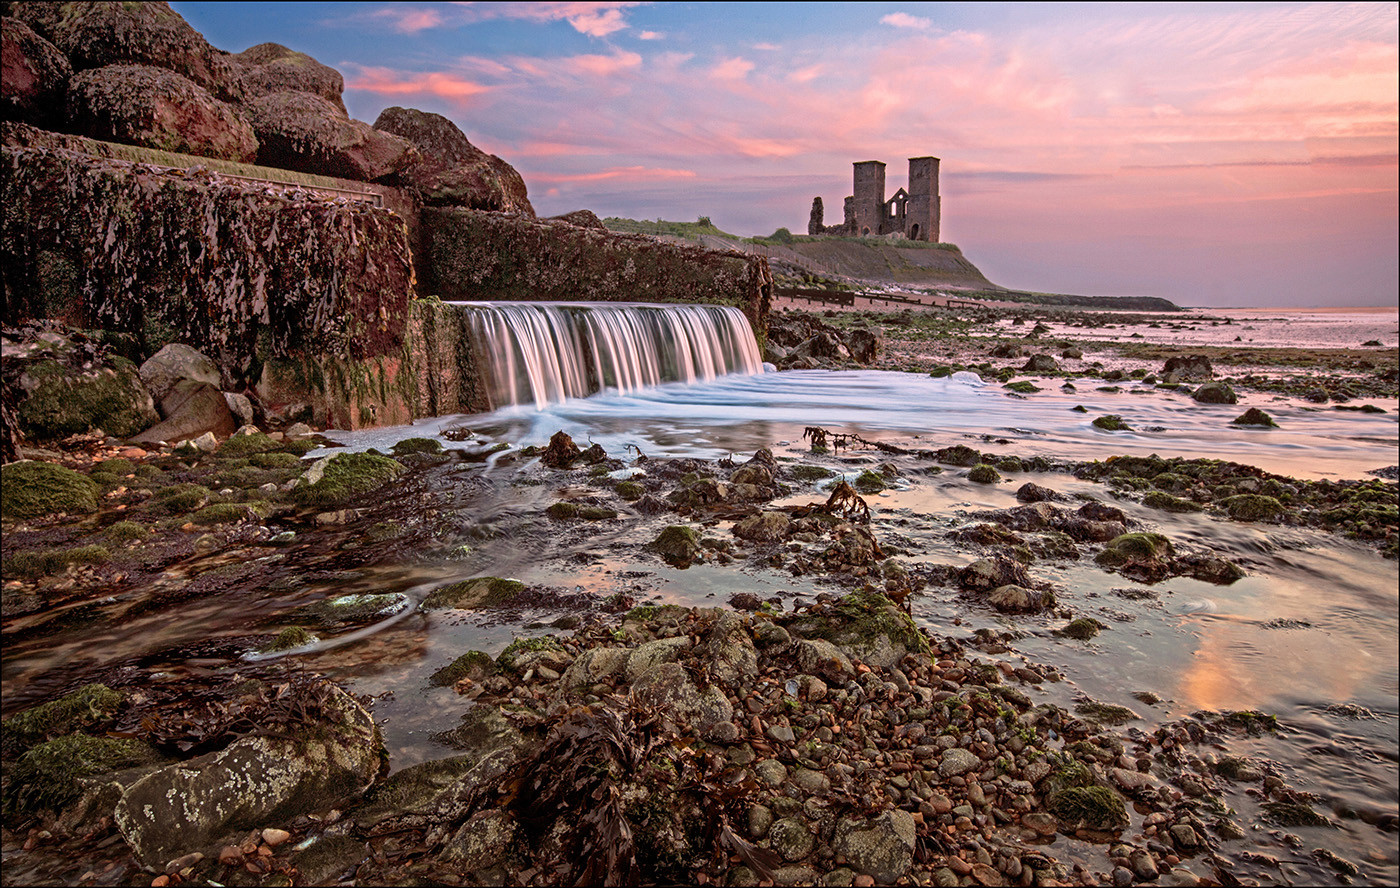 18 GOING DOWN OF THE SUN AT RECULVER by Graham Bunyan